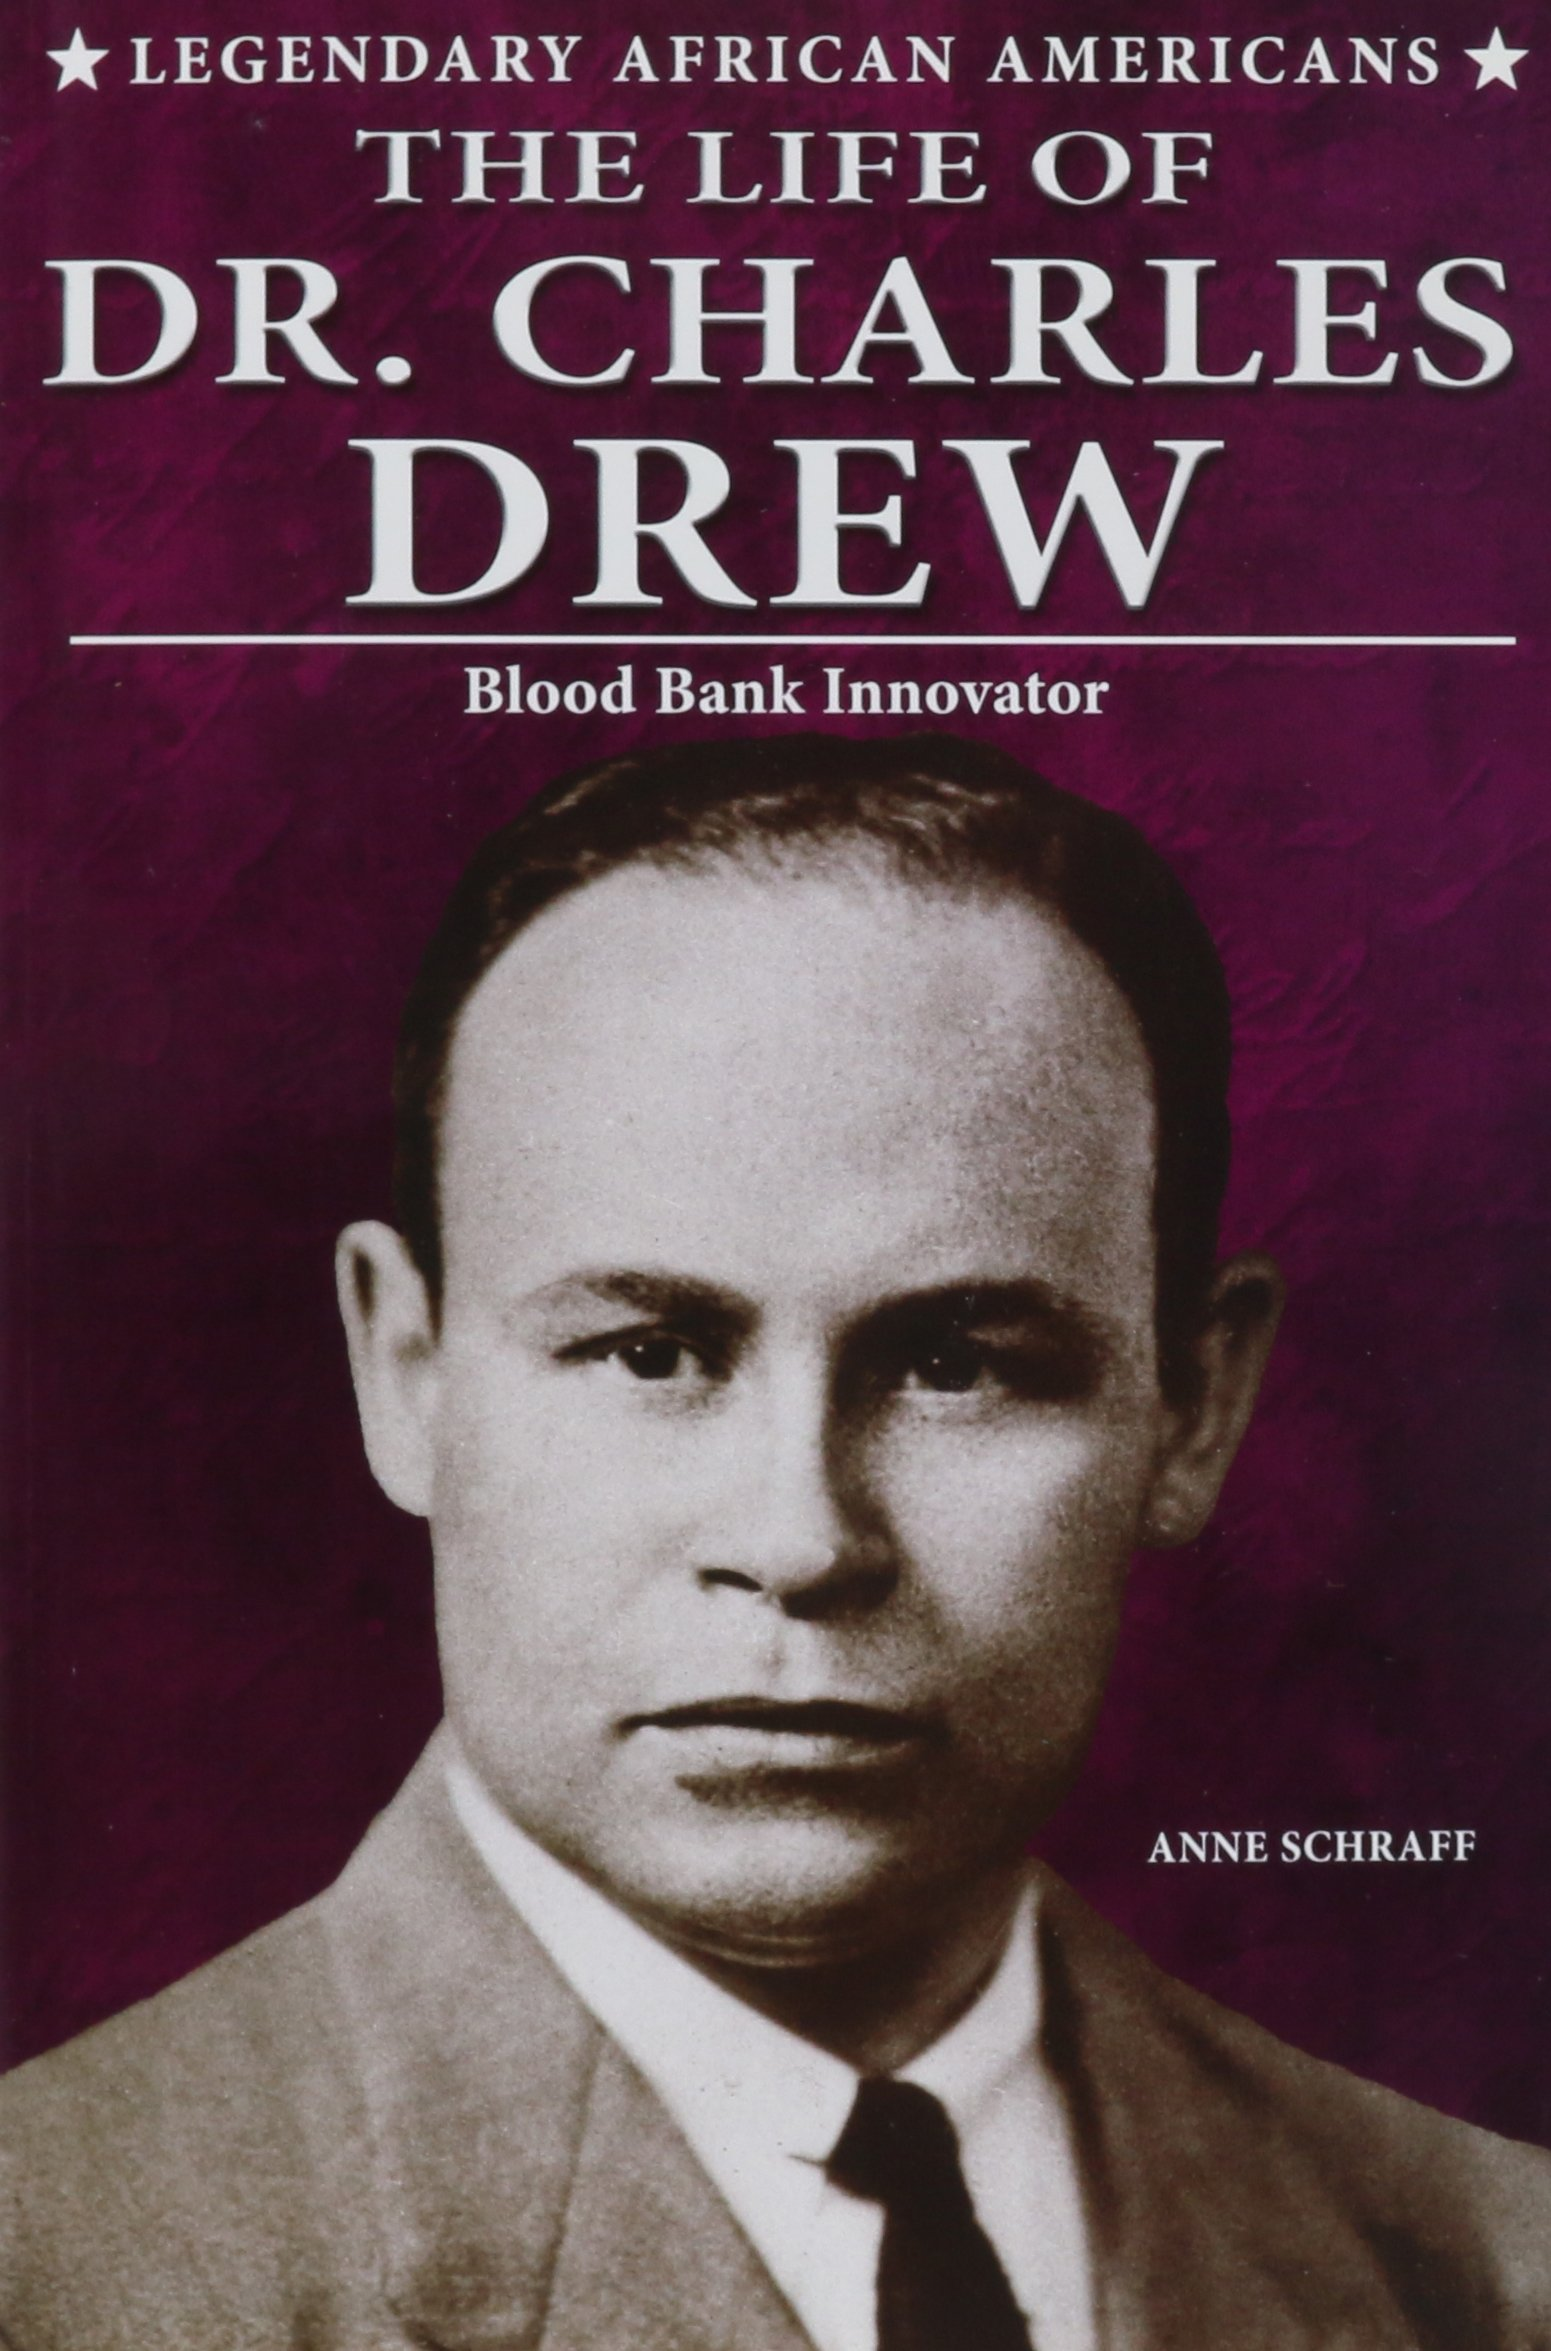 Download The Life of Dr. Charles Drew: Blood Bank Innovator (Legendary African Americans) PDF ePub fb2 book